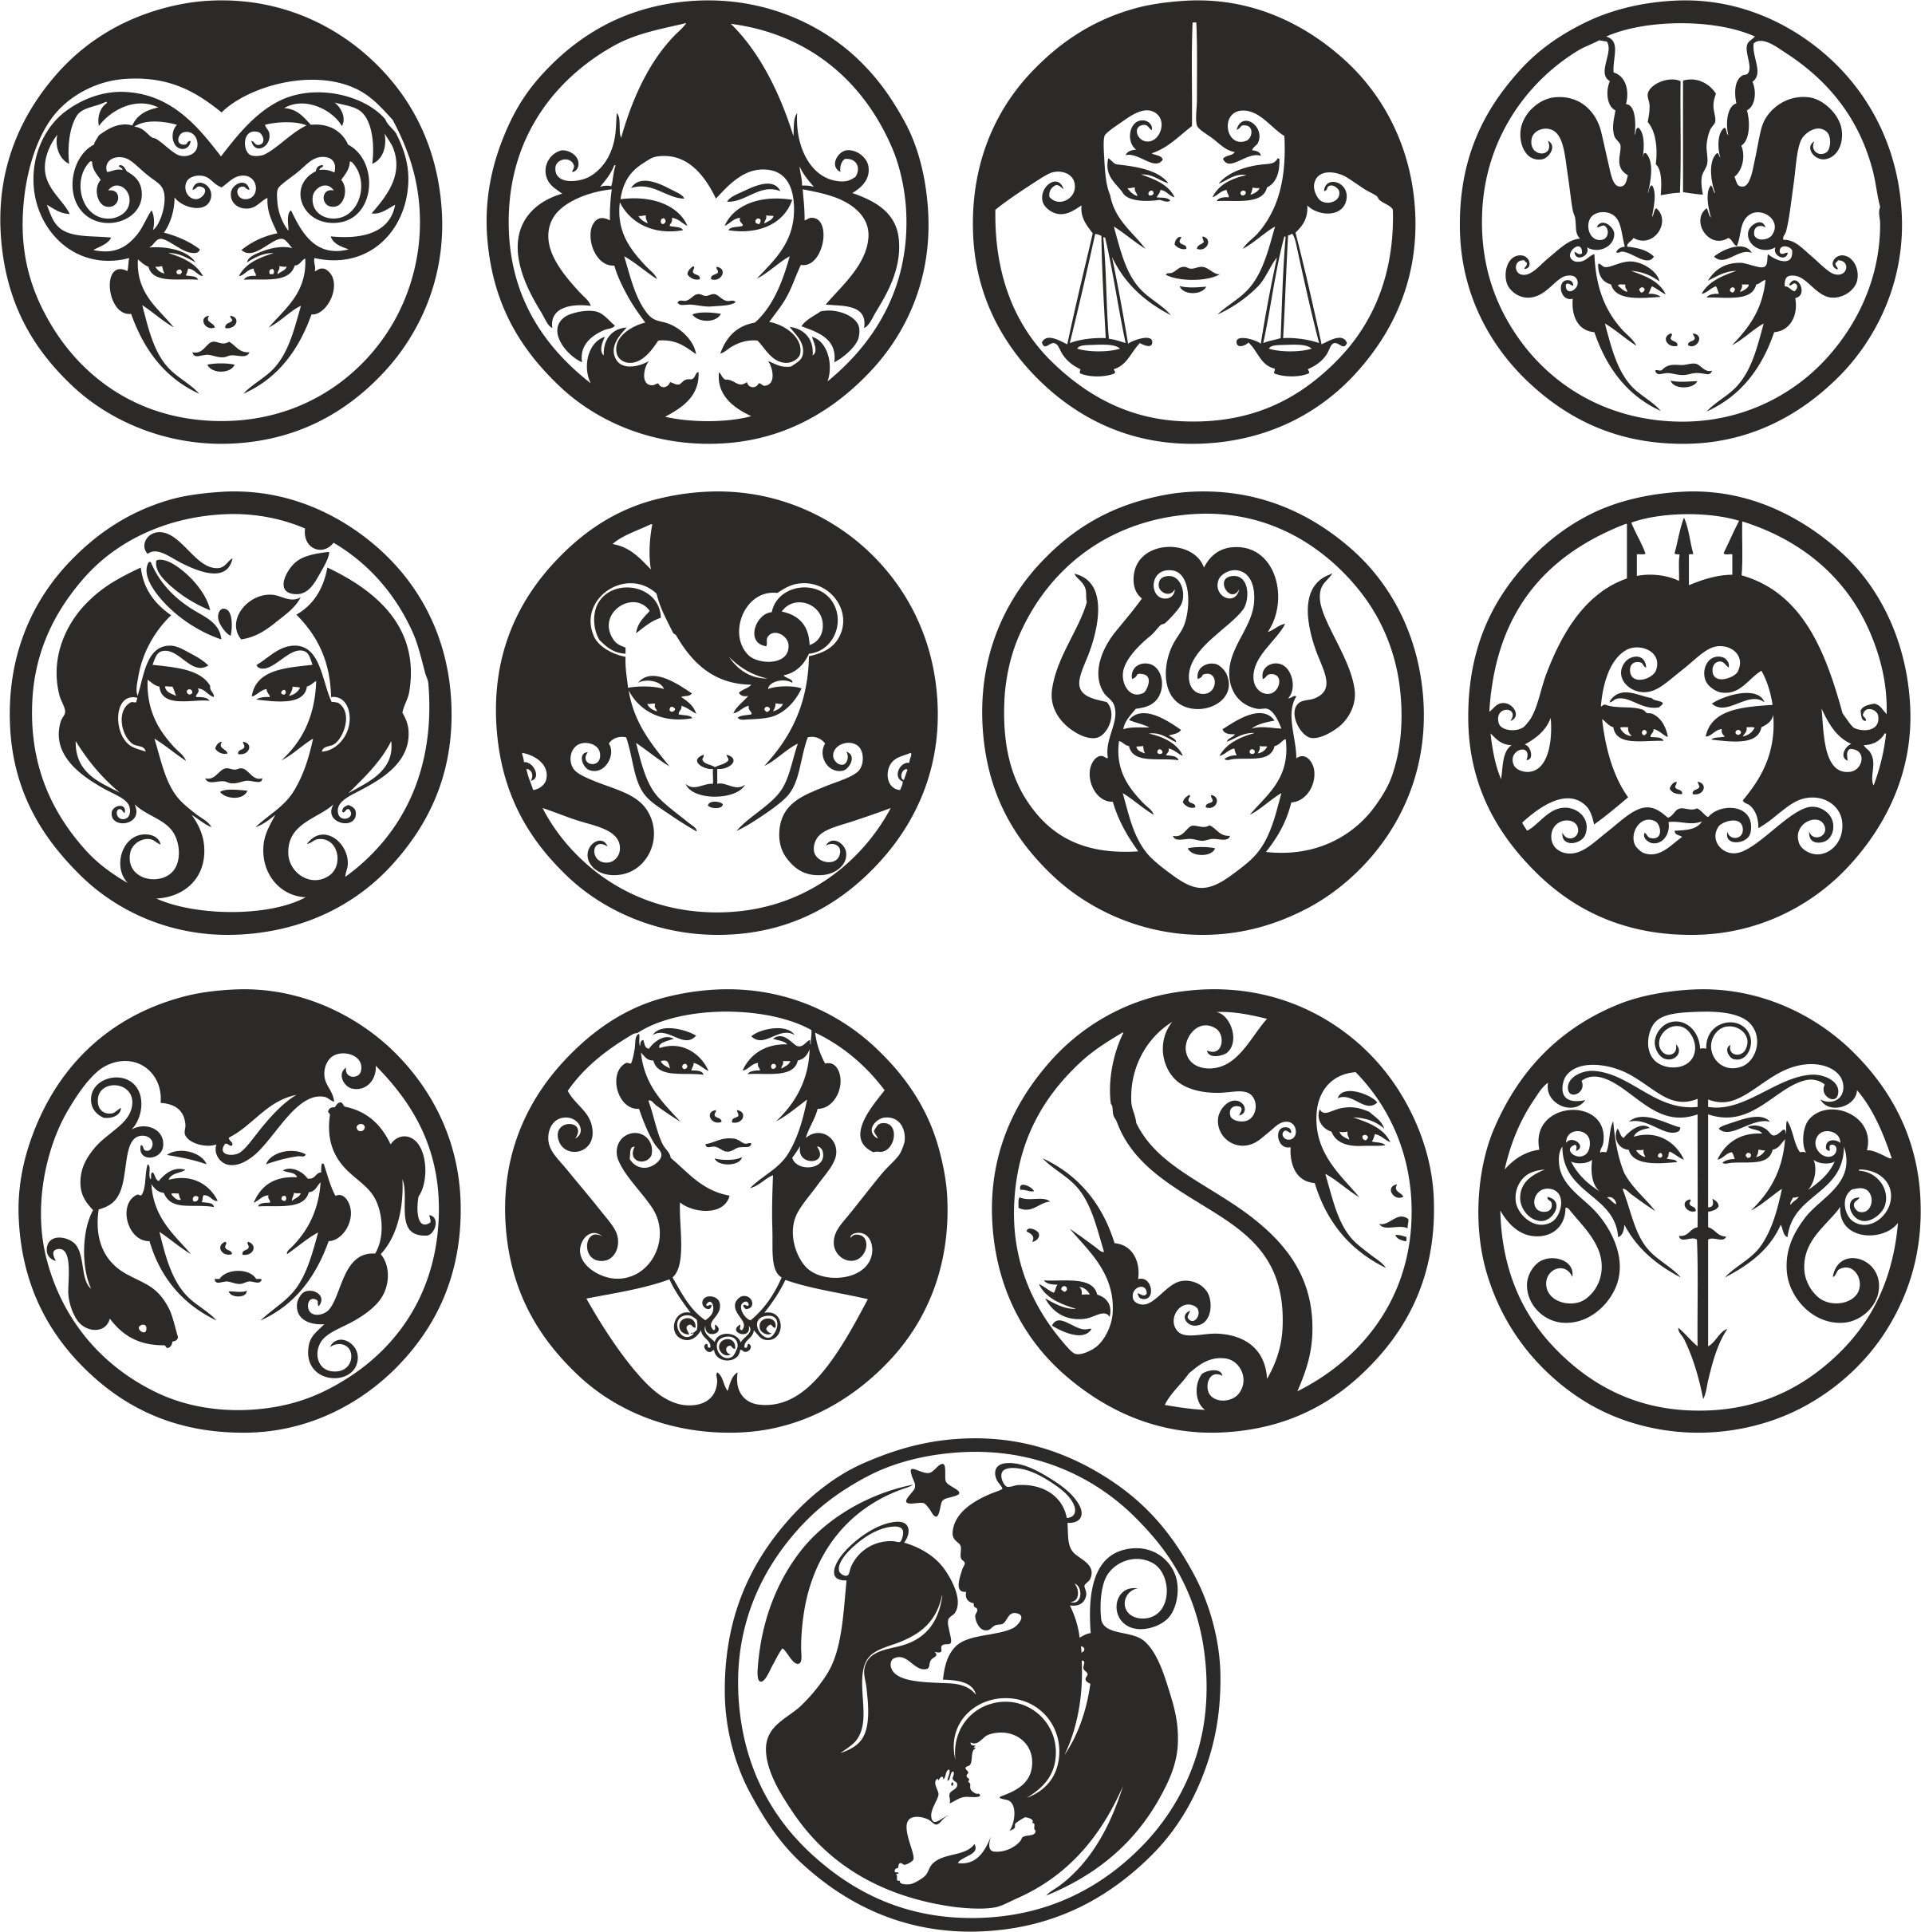 Funny Zodiac Signs In Form Of Female Faces Free CDR Vectors Art